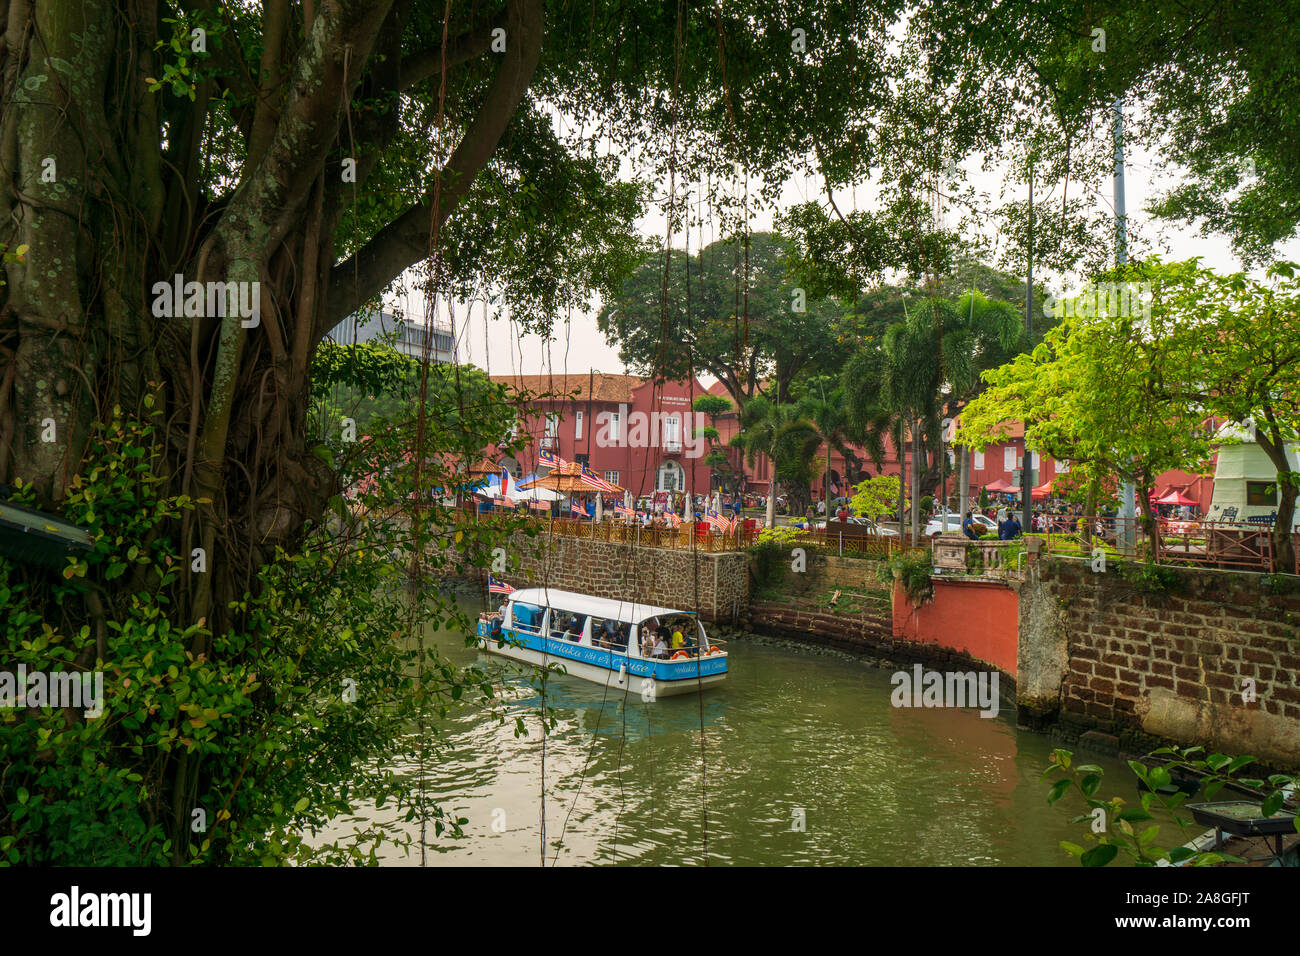 The historical city of Malacca in Malaysia Stock Photo